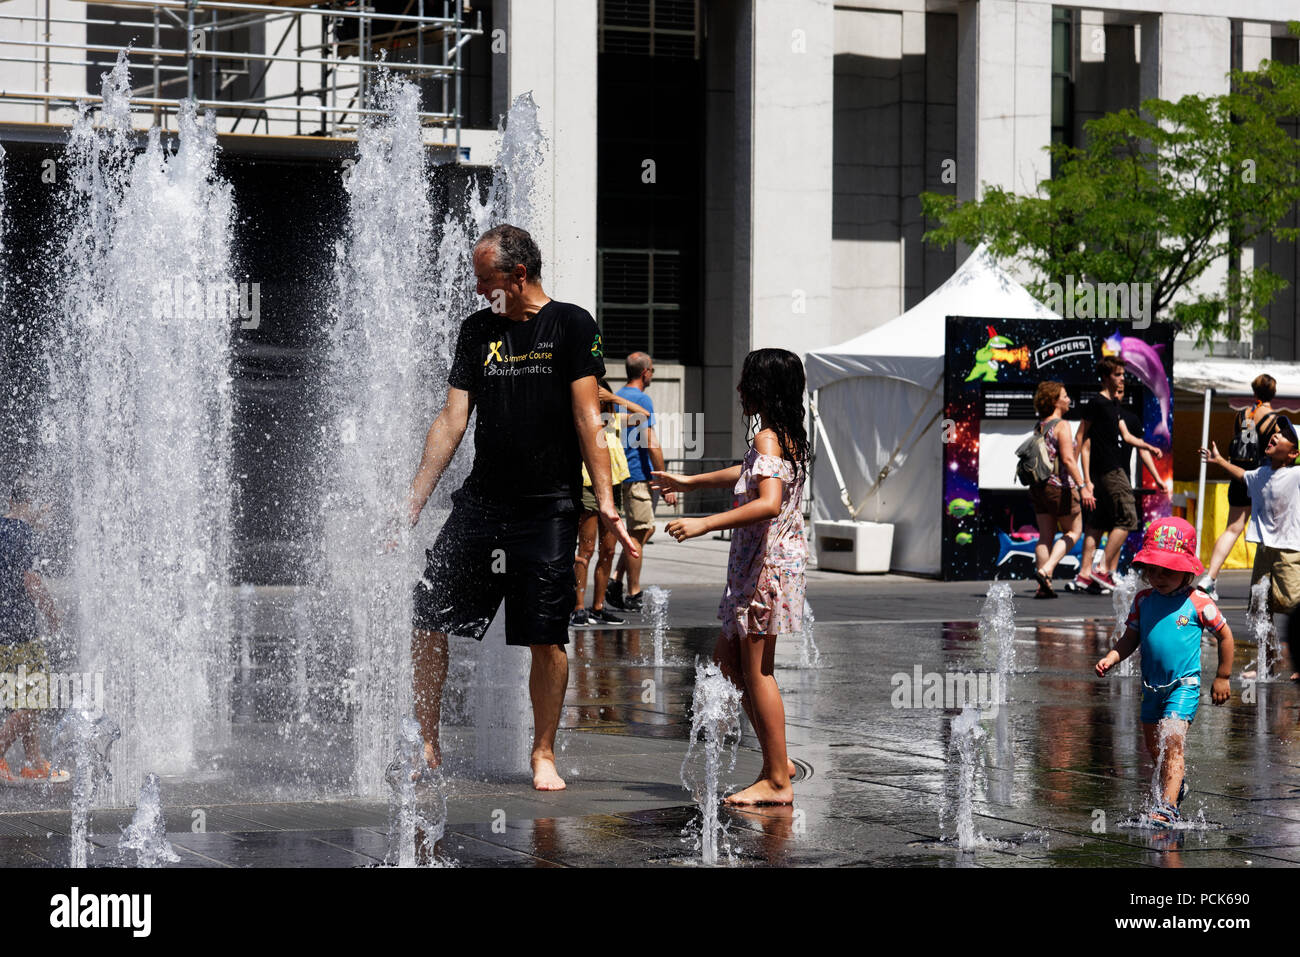 People keeping cool in the water fountains in Montreal in the 2018 heatwave - Stock Image